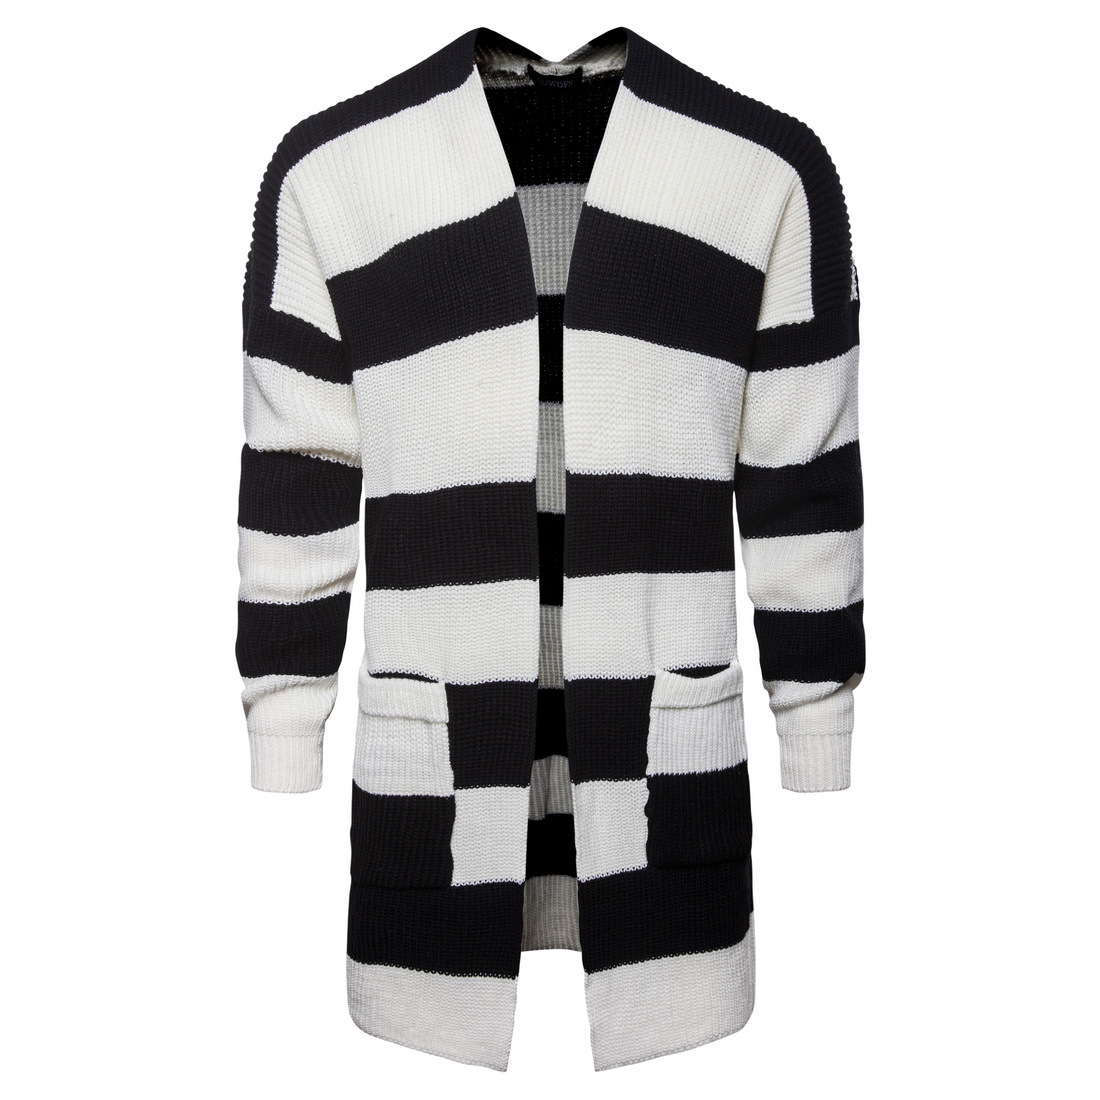 Men's Cotton Cardigan Striped Autumn Winter Warm Perfect Quality Pocket Long Coat Knitted Wool Casual Hombre Sweater Pull Homme